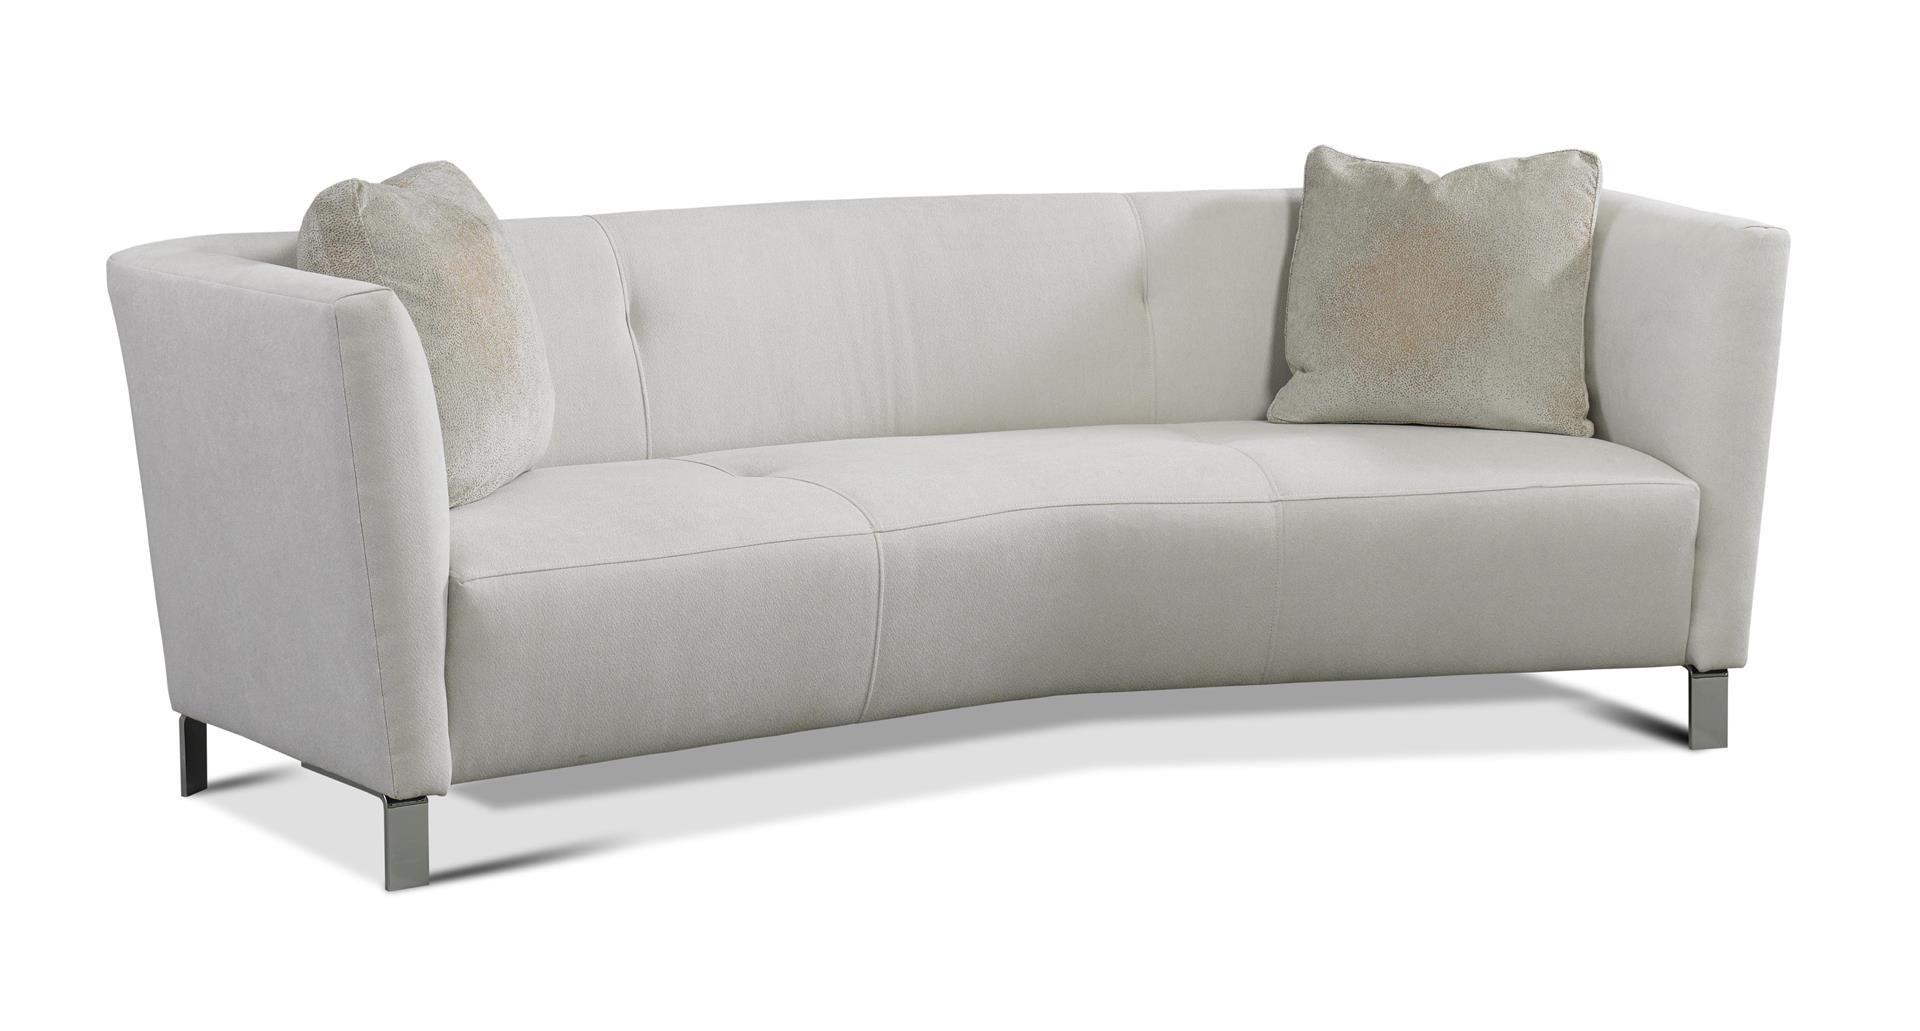 Mallory Sofa The Mallory Sofa Has A Cabriole Form With The Arms